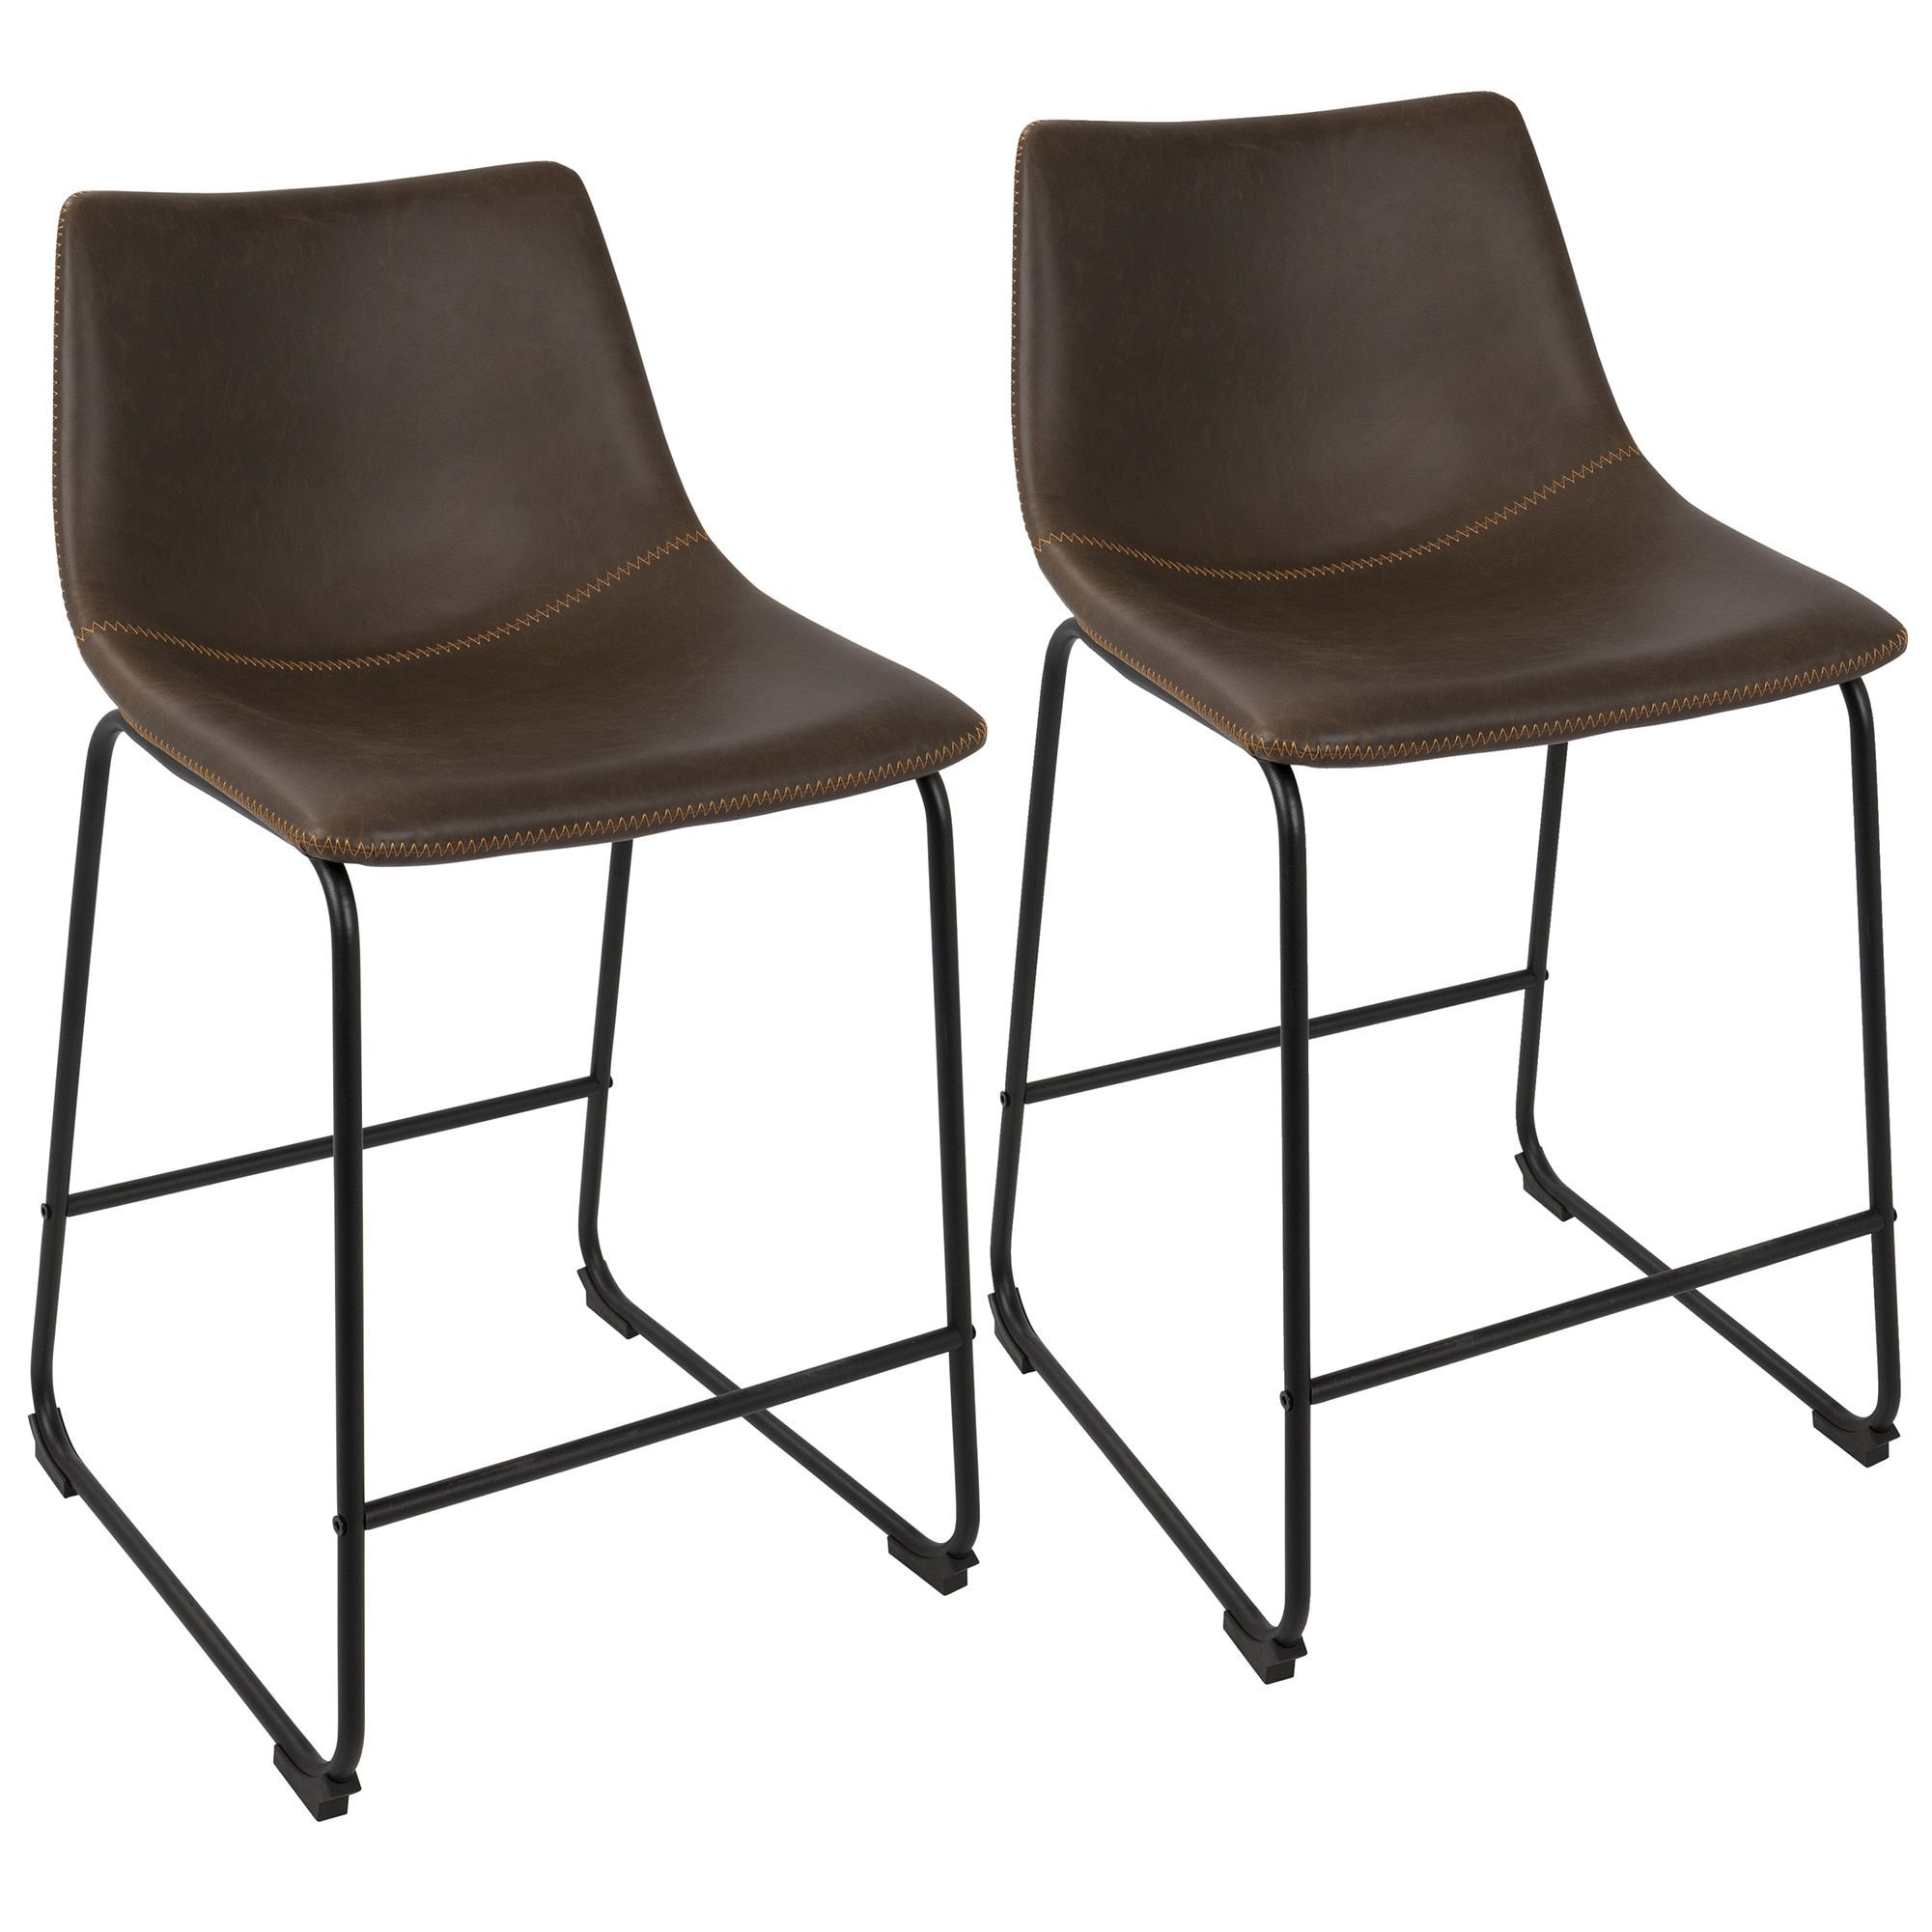 LumiSource Duke Industrial 26 inch Counter Stool Set of 2 Grey